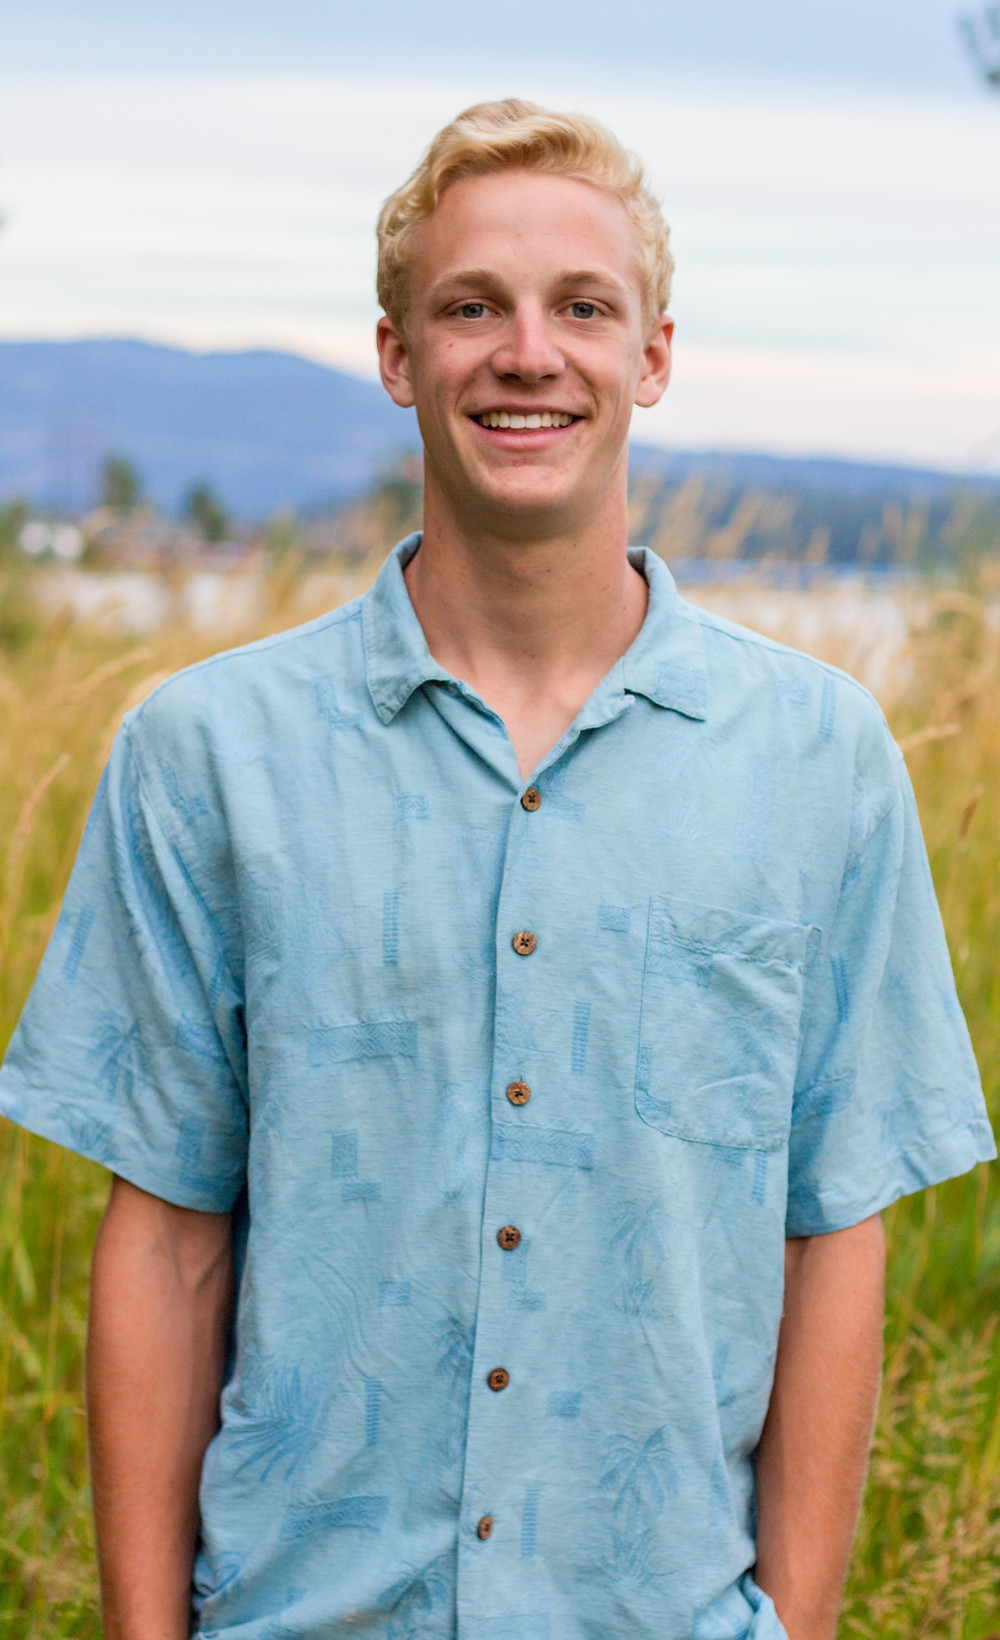 Athletes of the Month: Patrick Rockwell